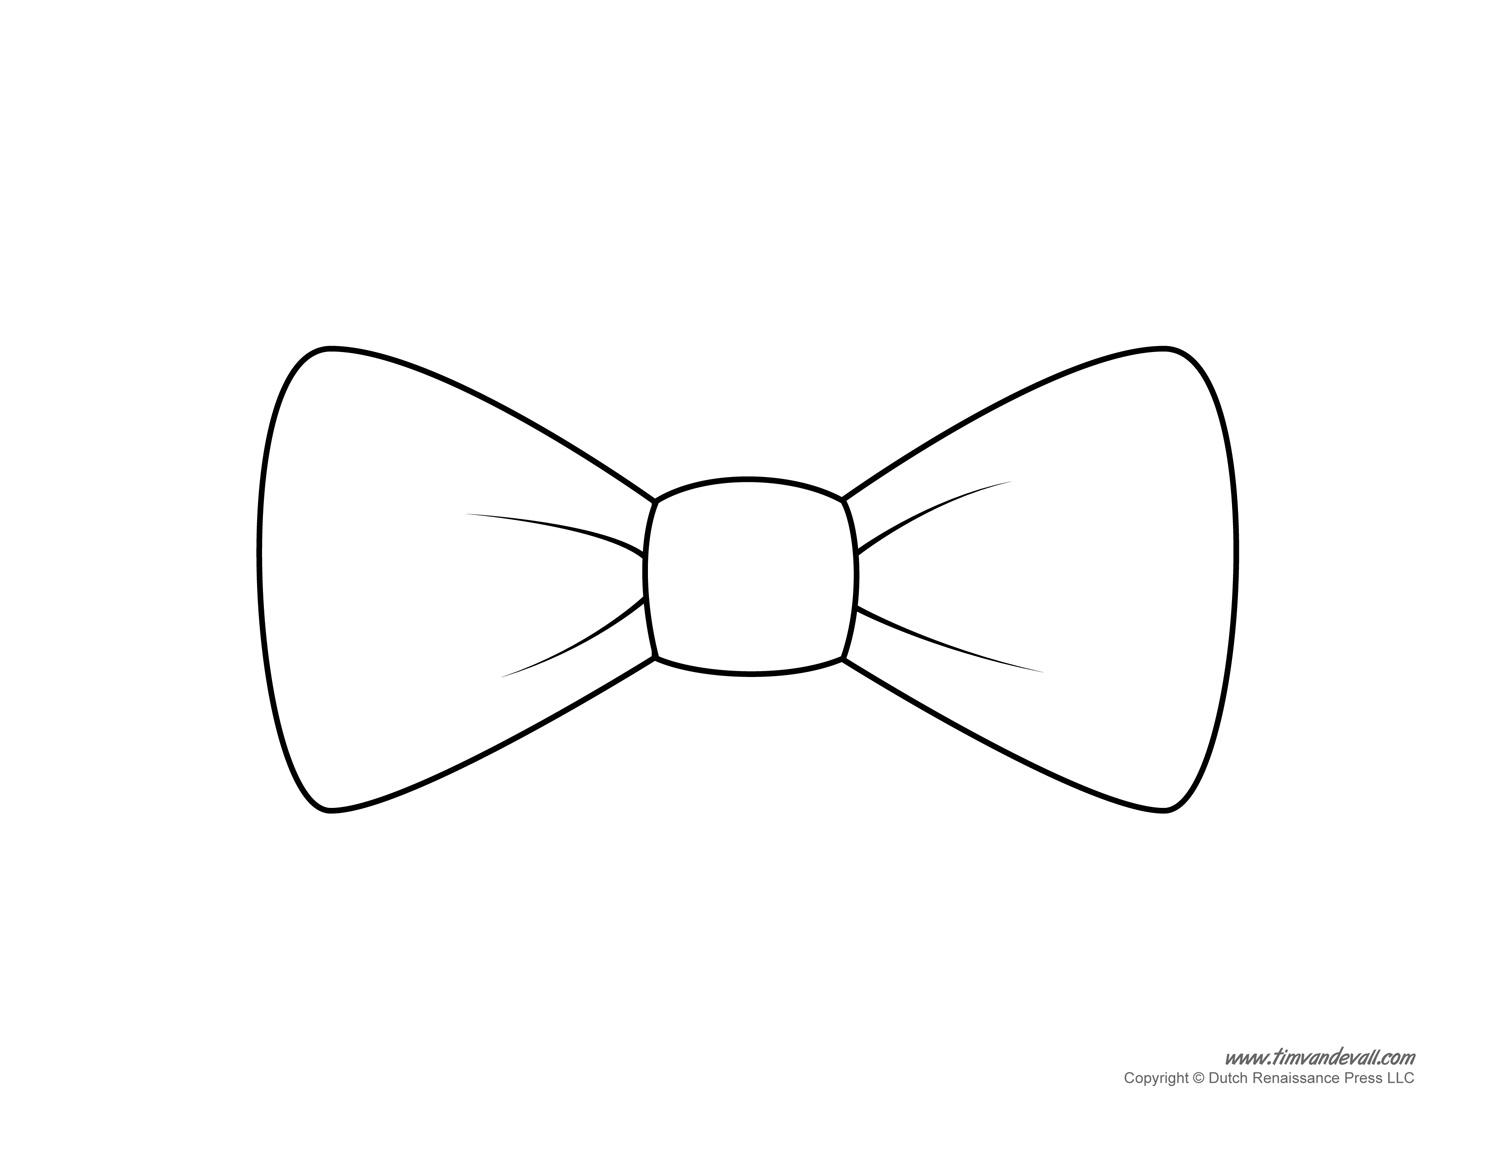 Doctor Who clipart bow tie pattern Paper Art Bow Clip Bow